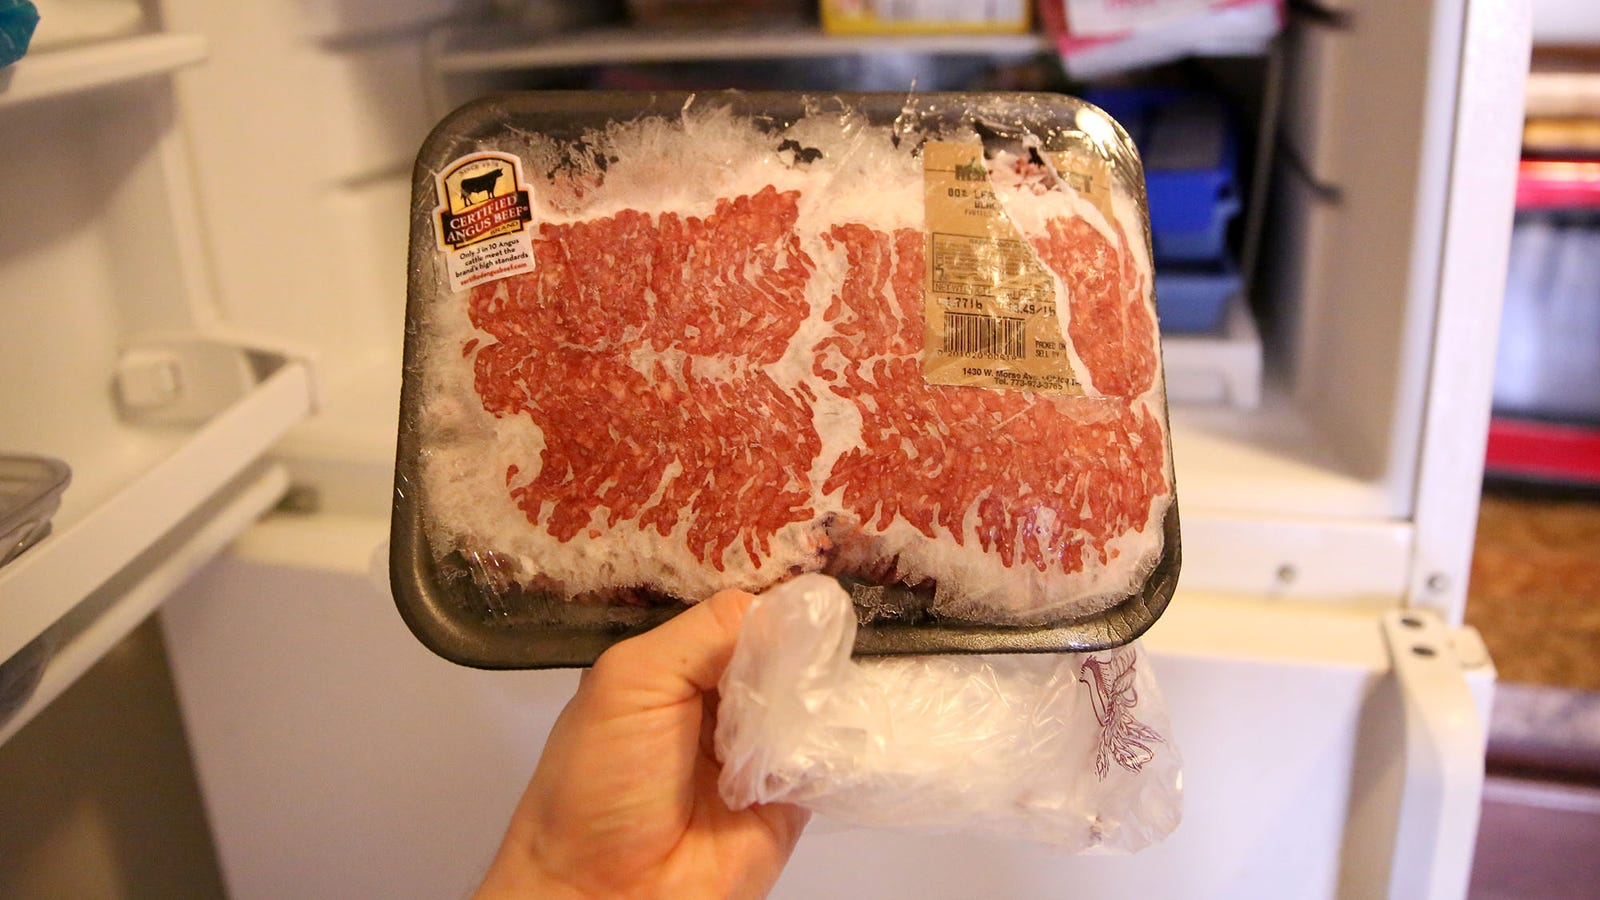 Two pounds of ground beef from the back of the freezer: Or is it flank steak? It'll be fine once it's defrosted.